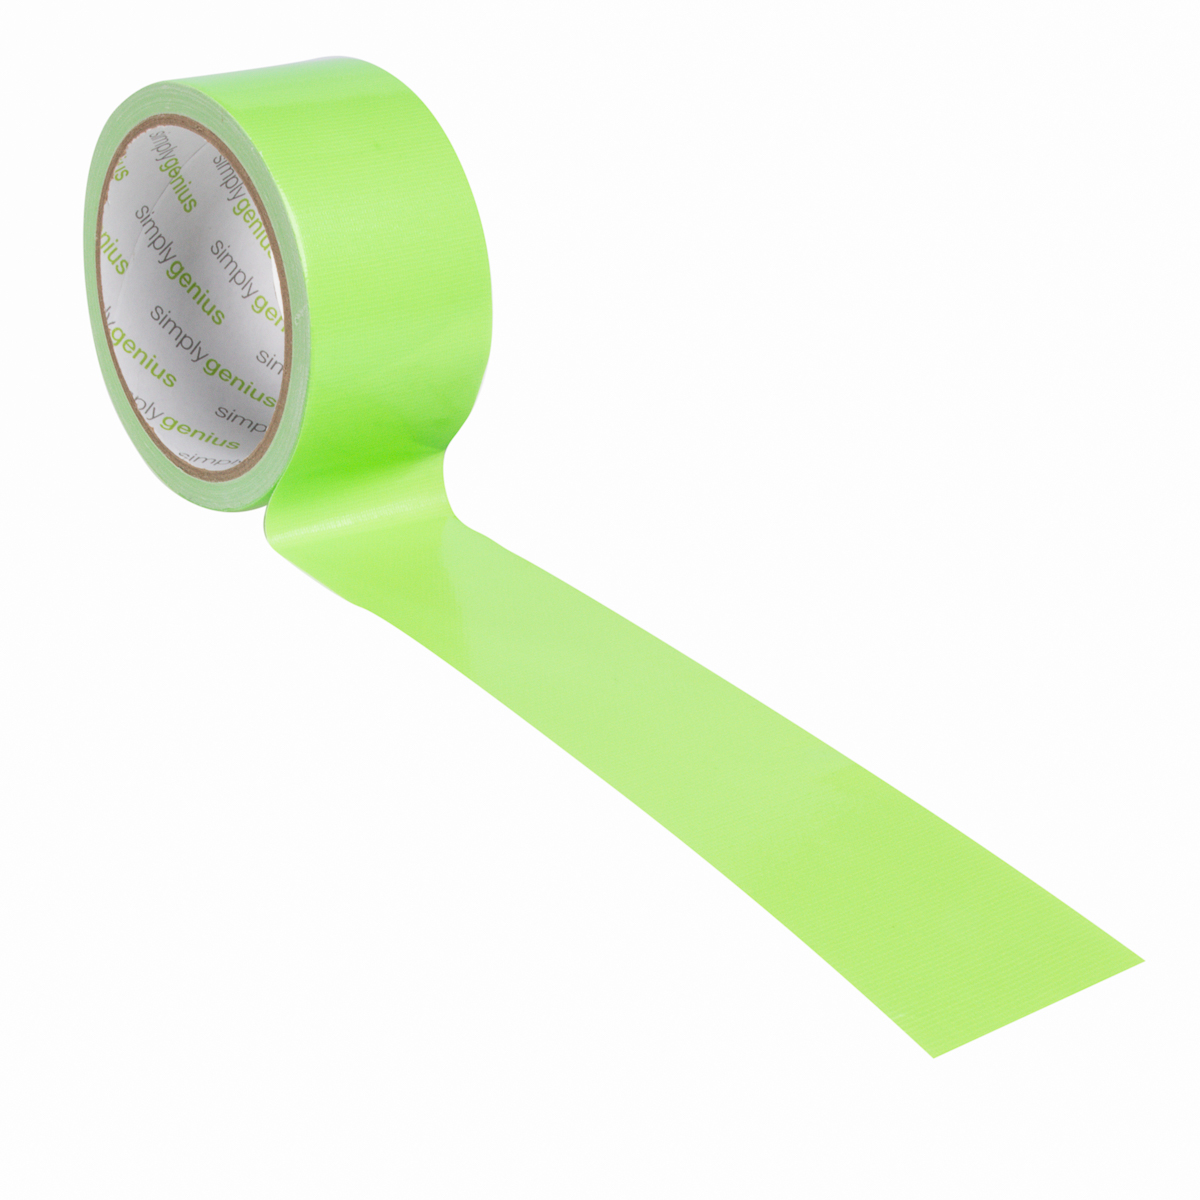 Simply-Genius-Duct-Tape-Roll-Colors-Patterns-Craft-Supplies-Colored-amp-Patterned thumbnail 174